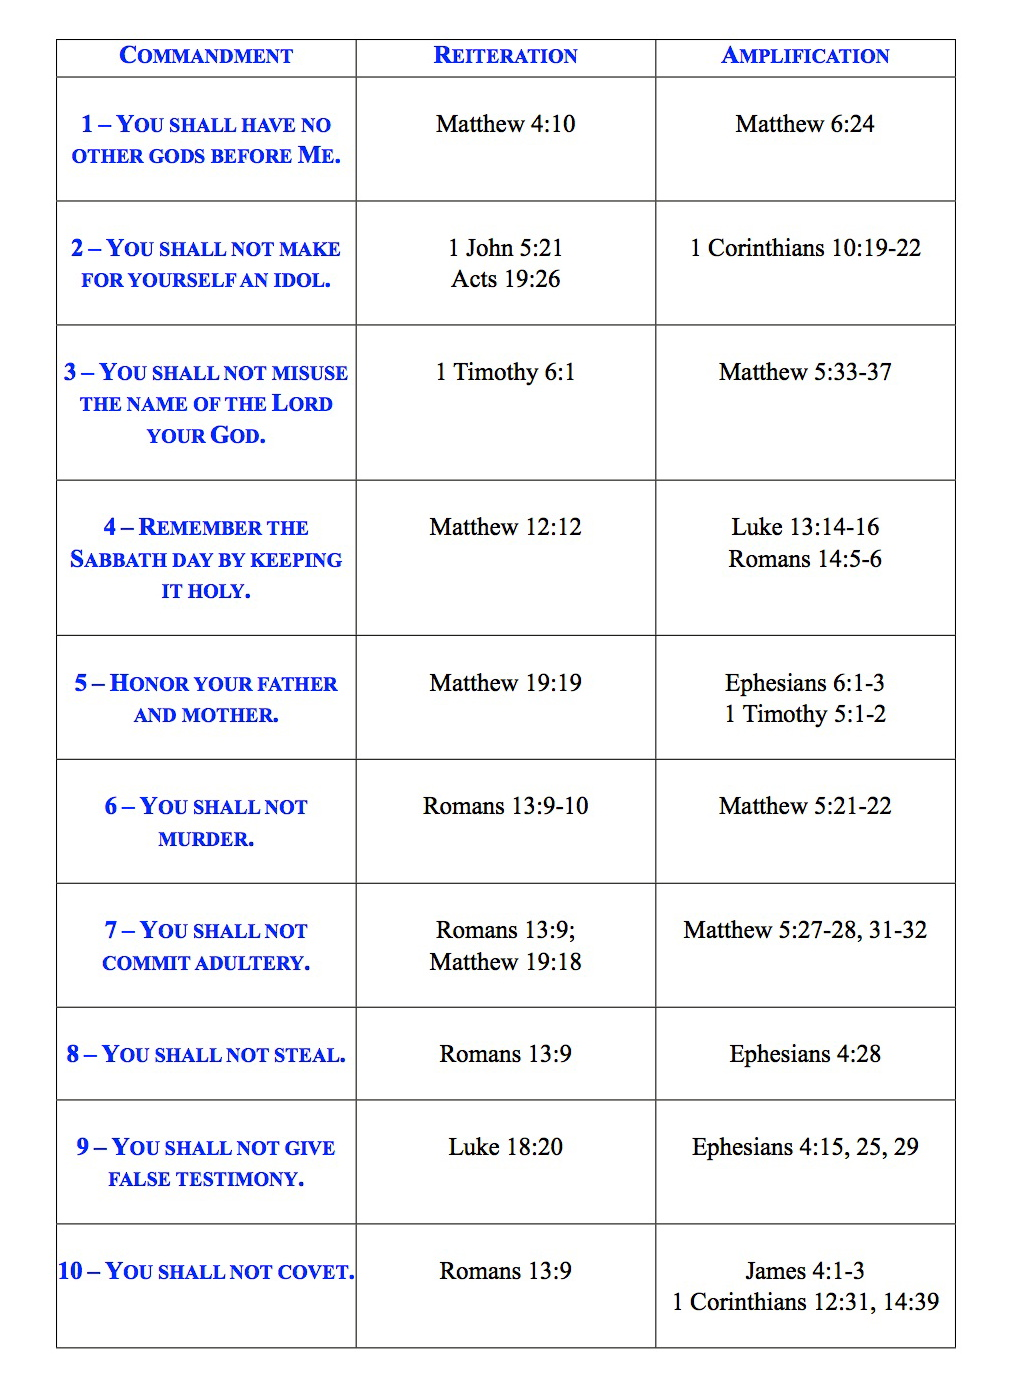 10 commandments of the Bible - the law for Christians